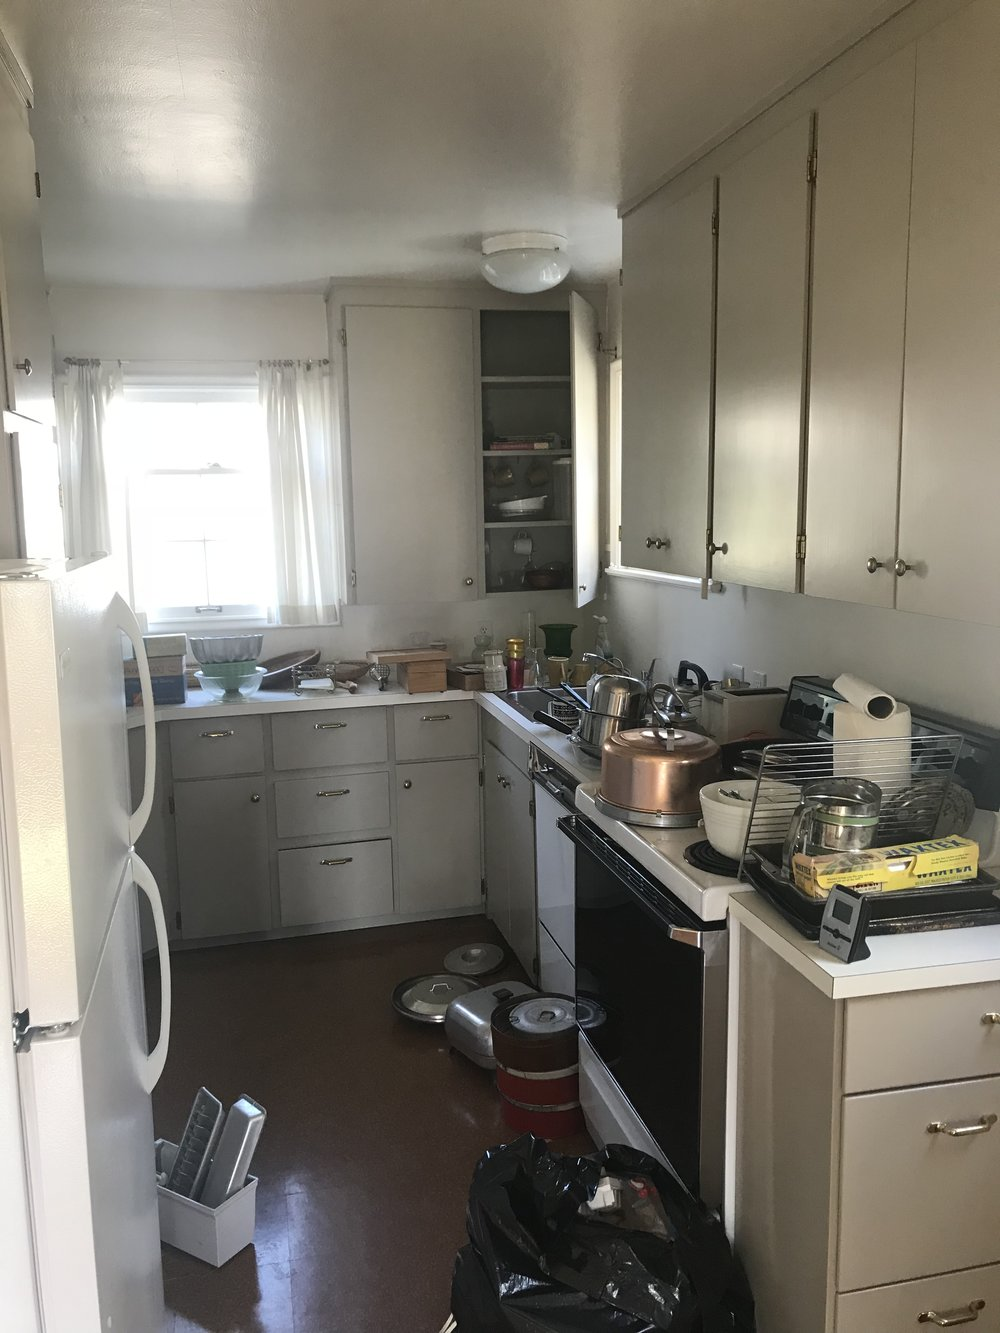 Copy of The outdated kitchen was small and dark with very little storage.